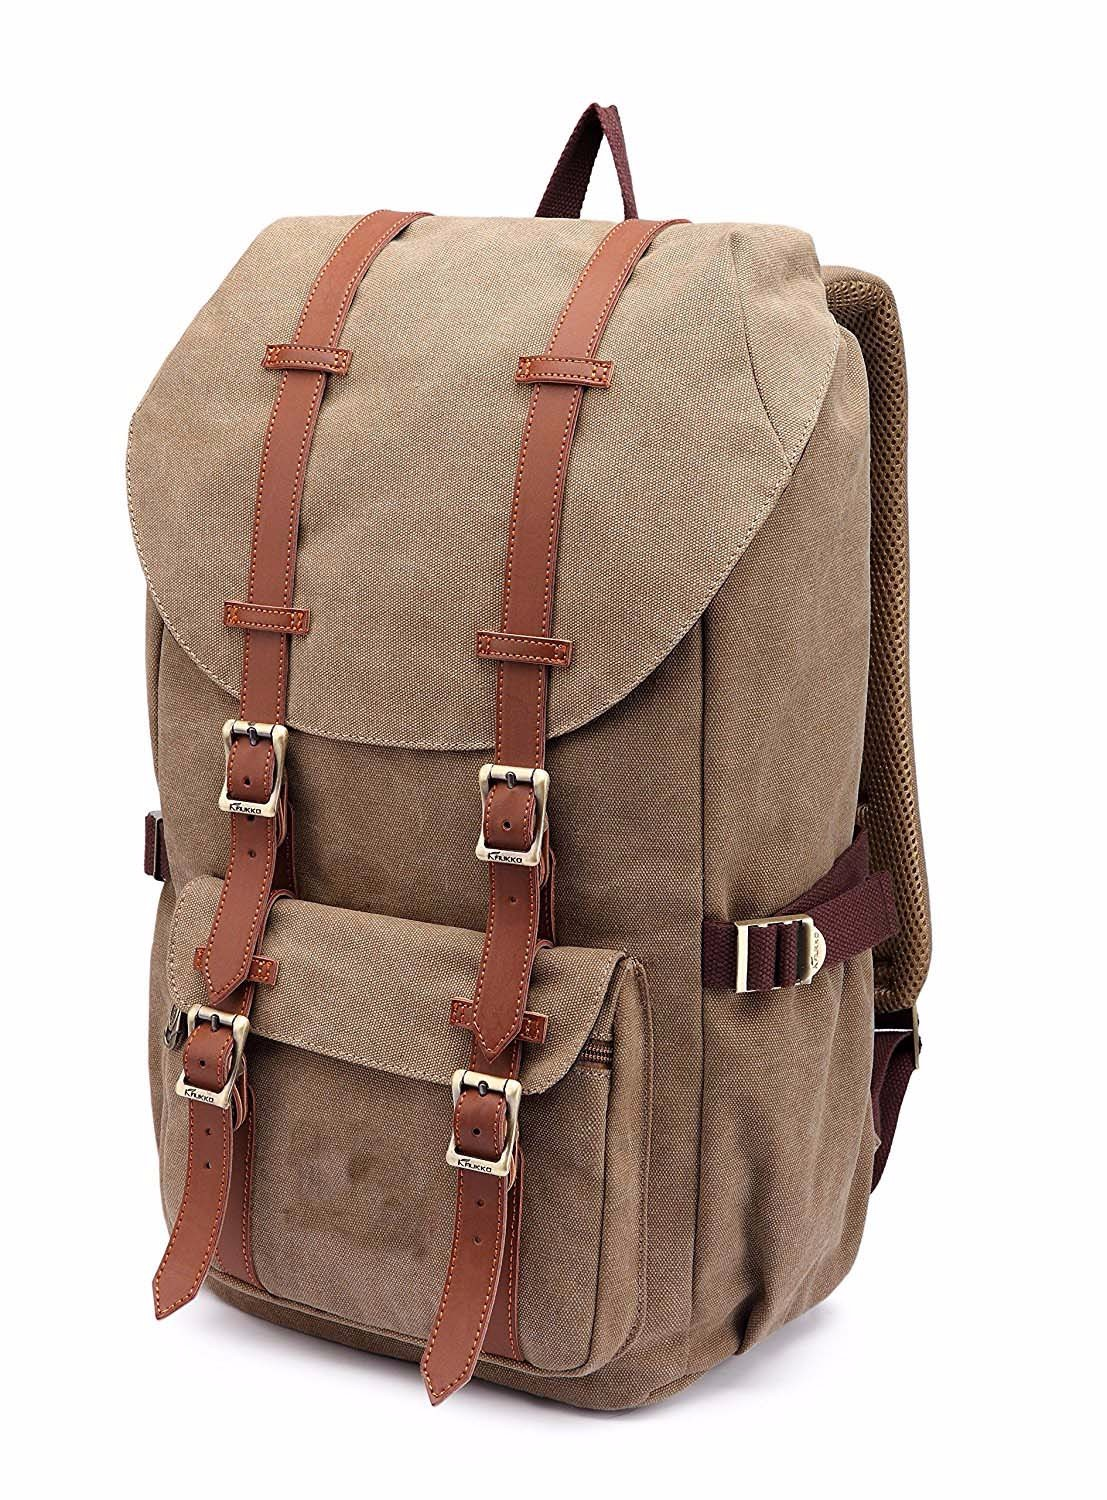 Travel Backpack Daypack Manufacturers, Travel Backpack Daypack Factory, Supply Travel Backpack Daypack